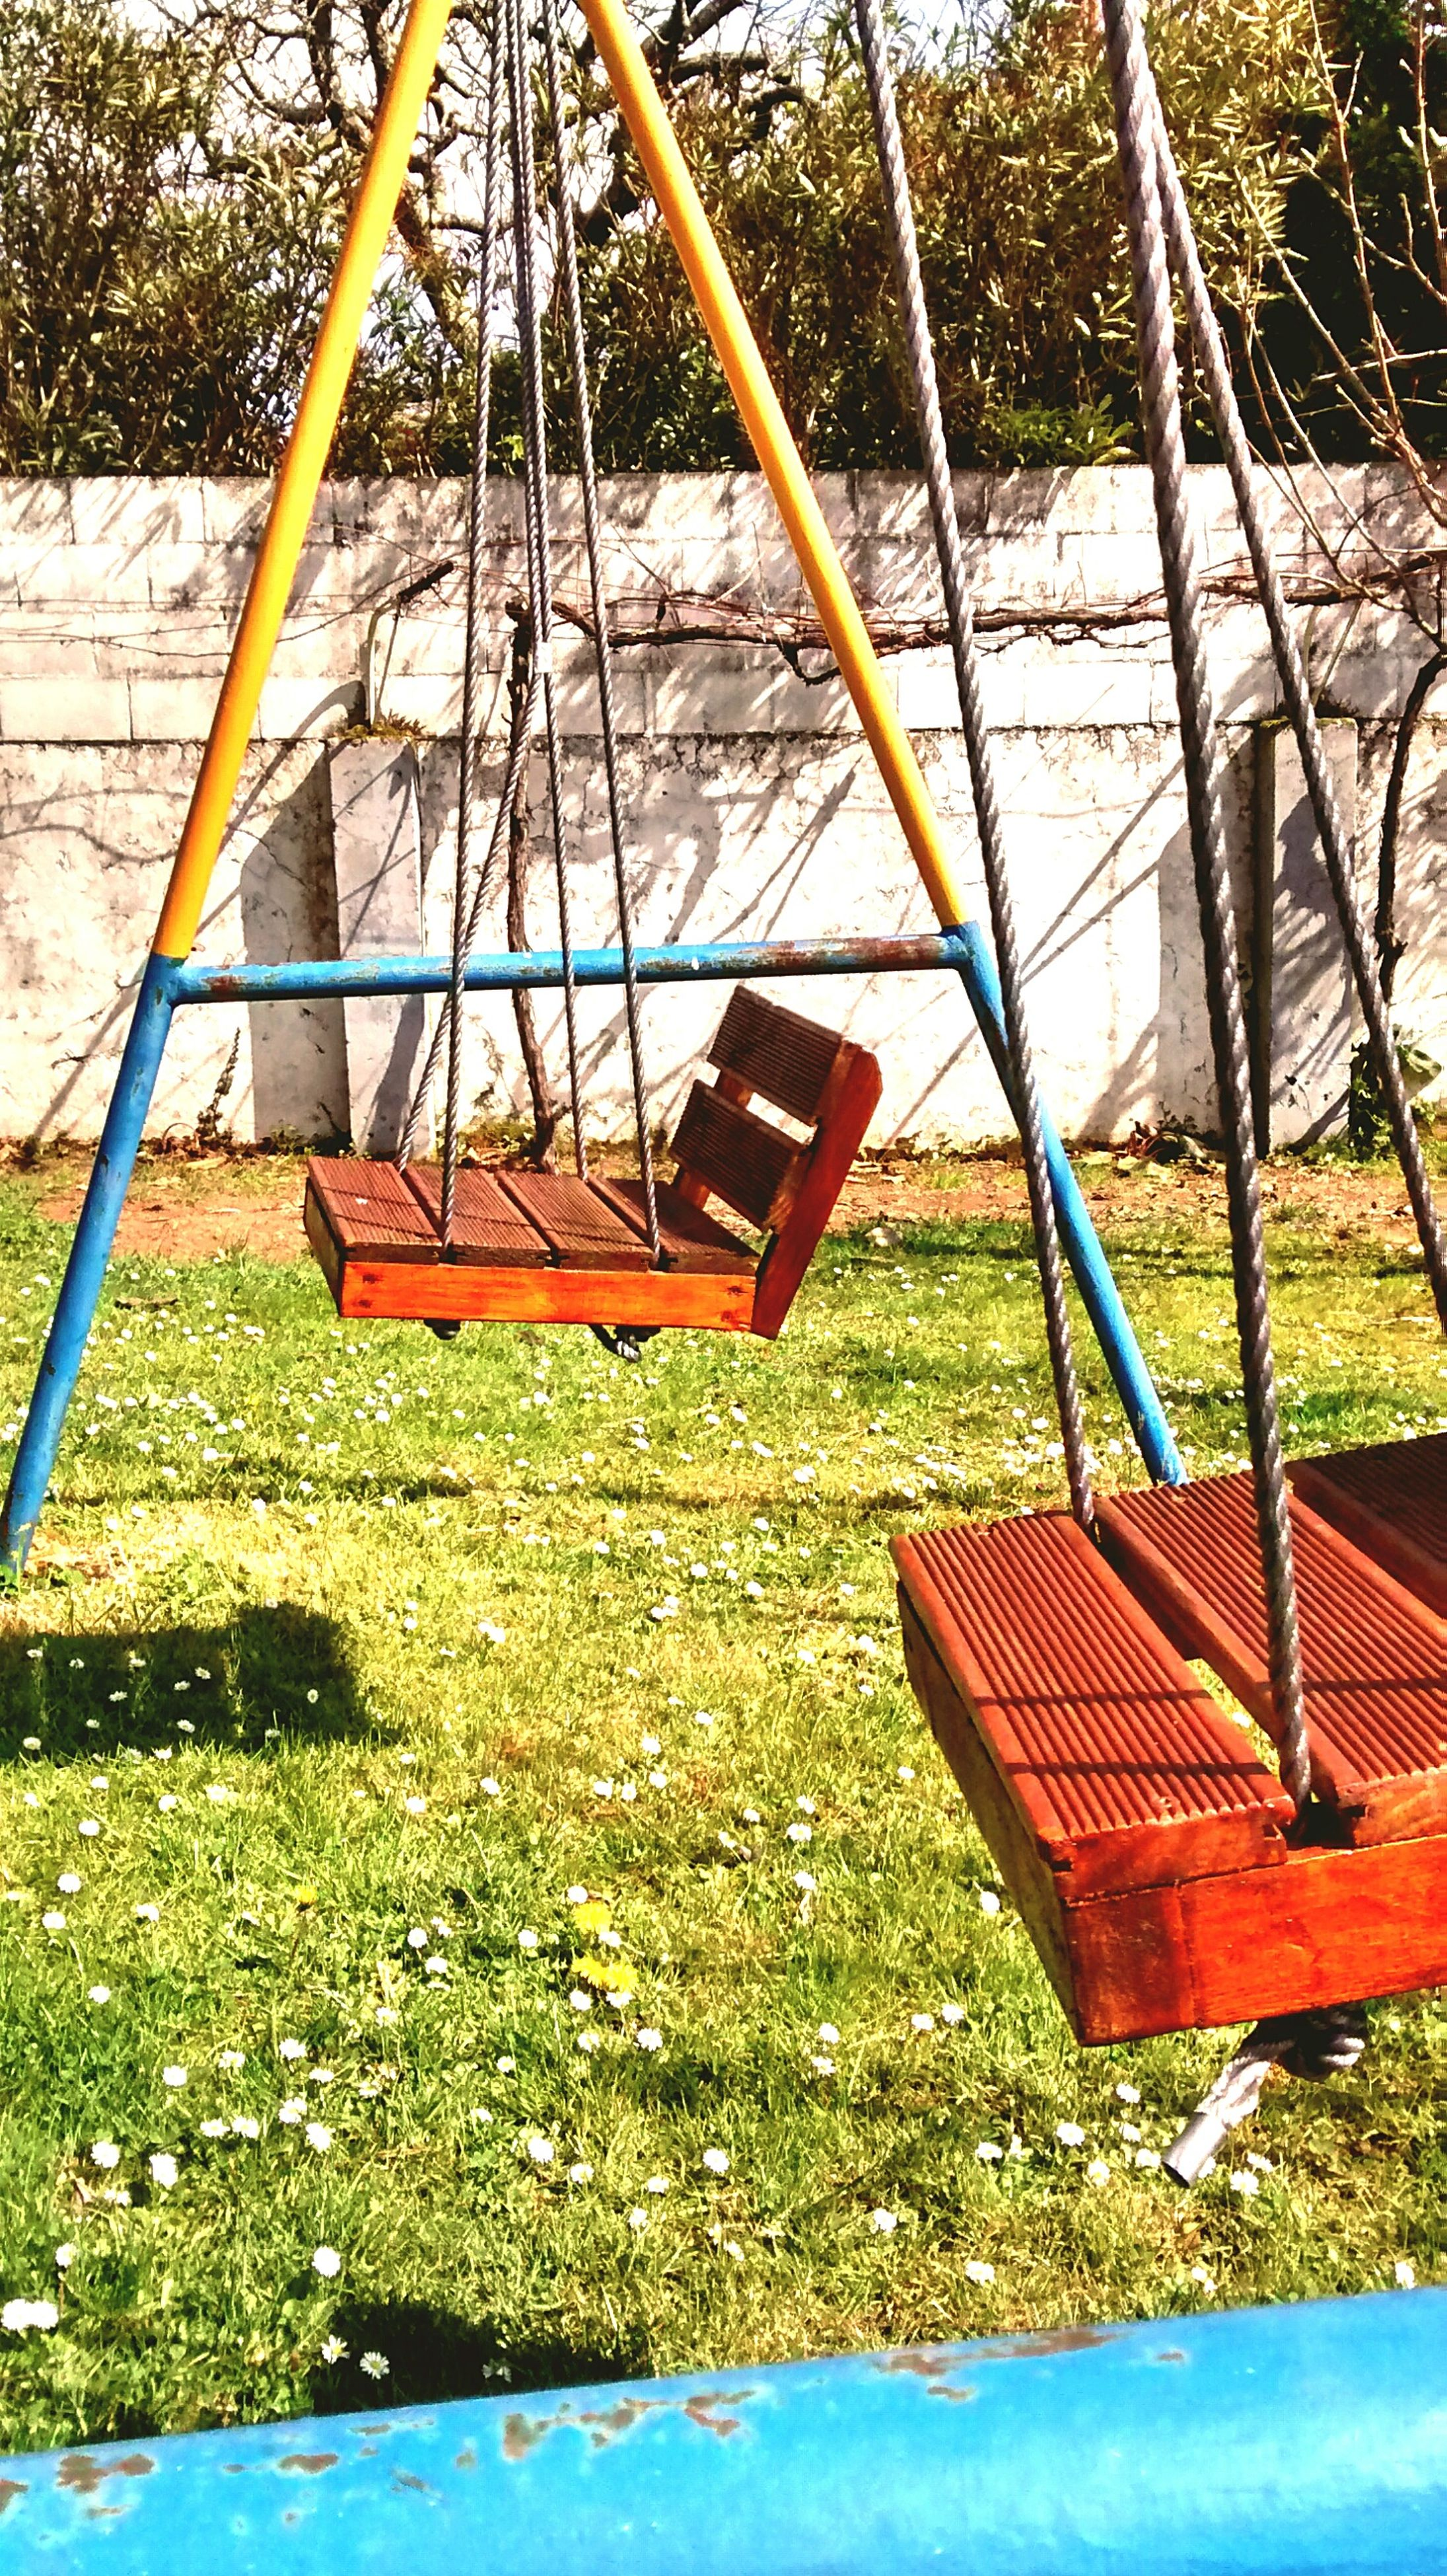 grass, absence, swing, playground, empty, chair, bench, grassy, field, tree, sunlight, tranquility, nature, day, park - man made space, seat, wood - material, outdoors, park bench, childhood